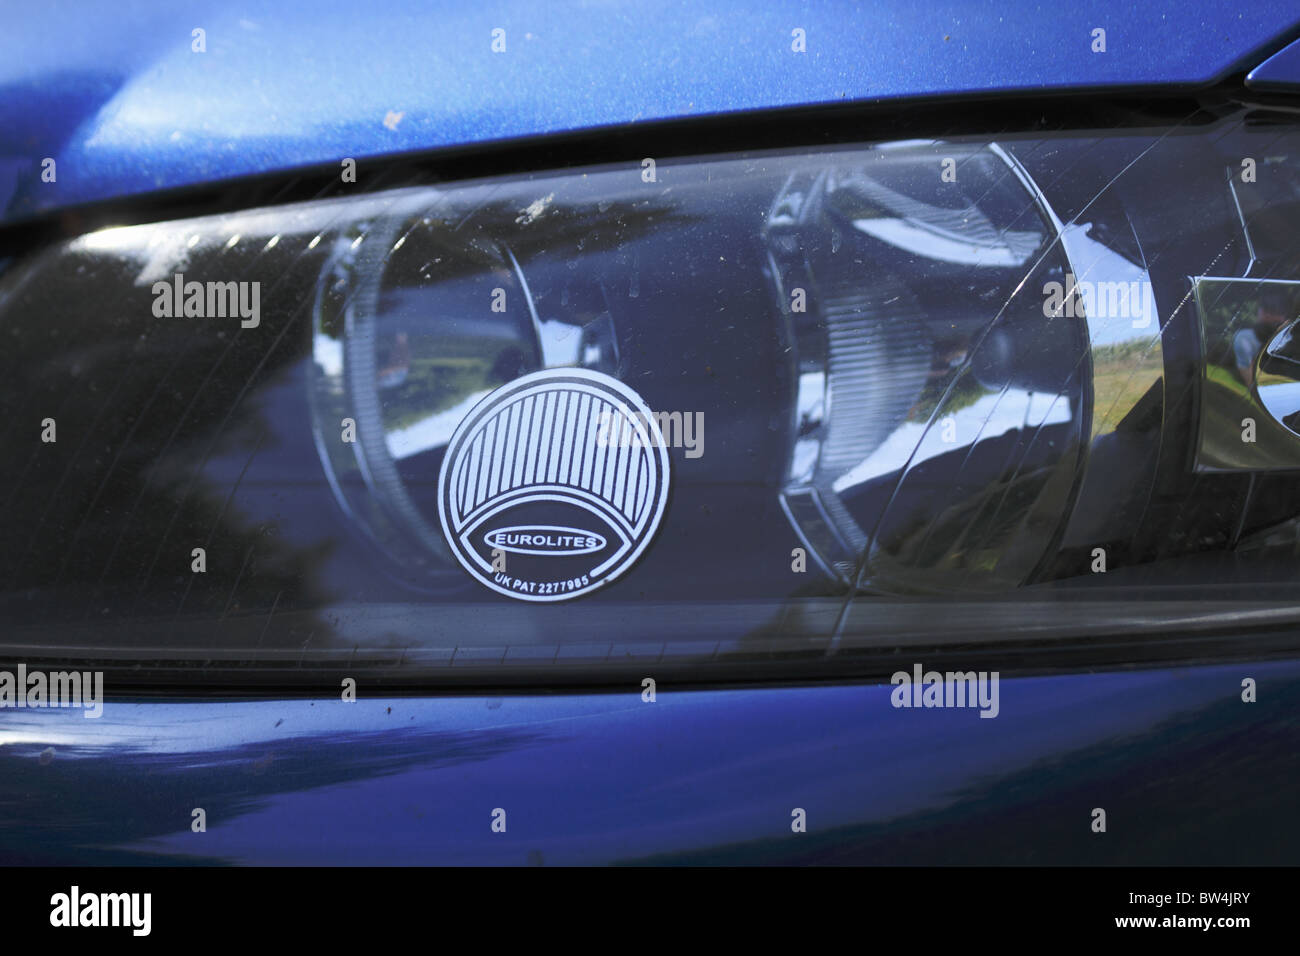 Headlight deflectors fitted to a UK car for driving on the right in Europe. - Stock Image